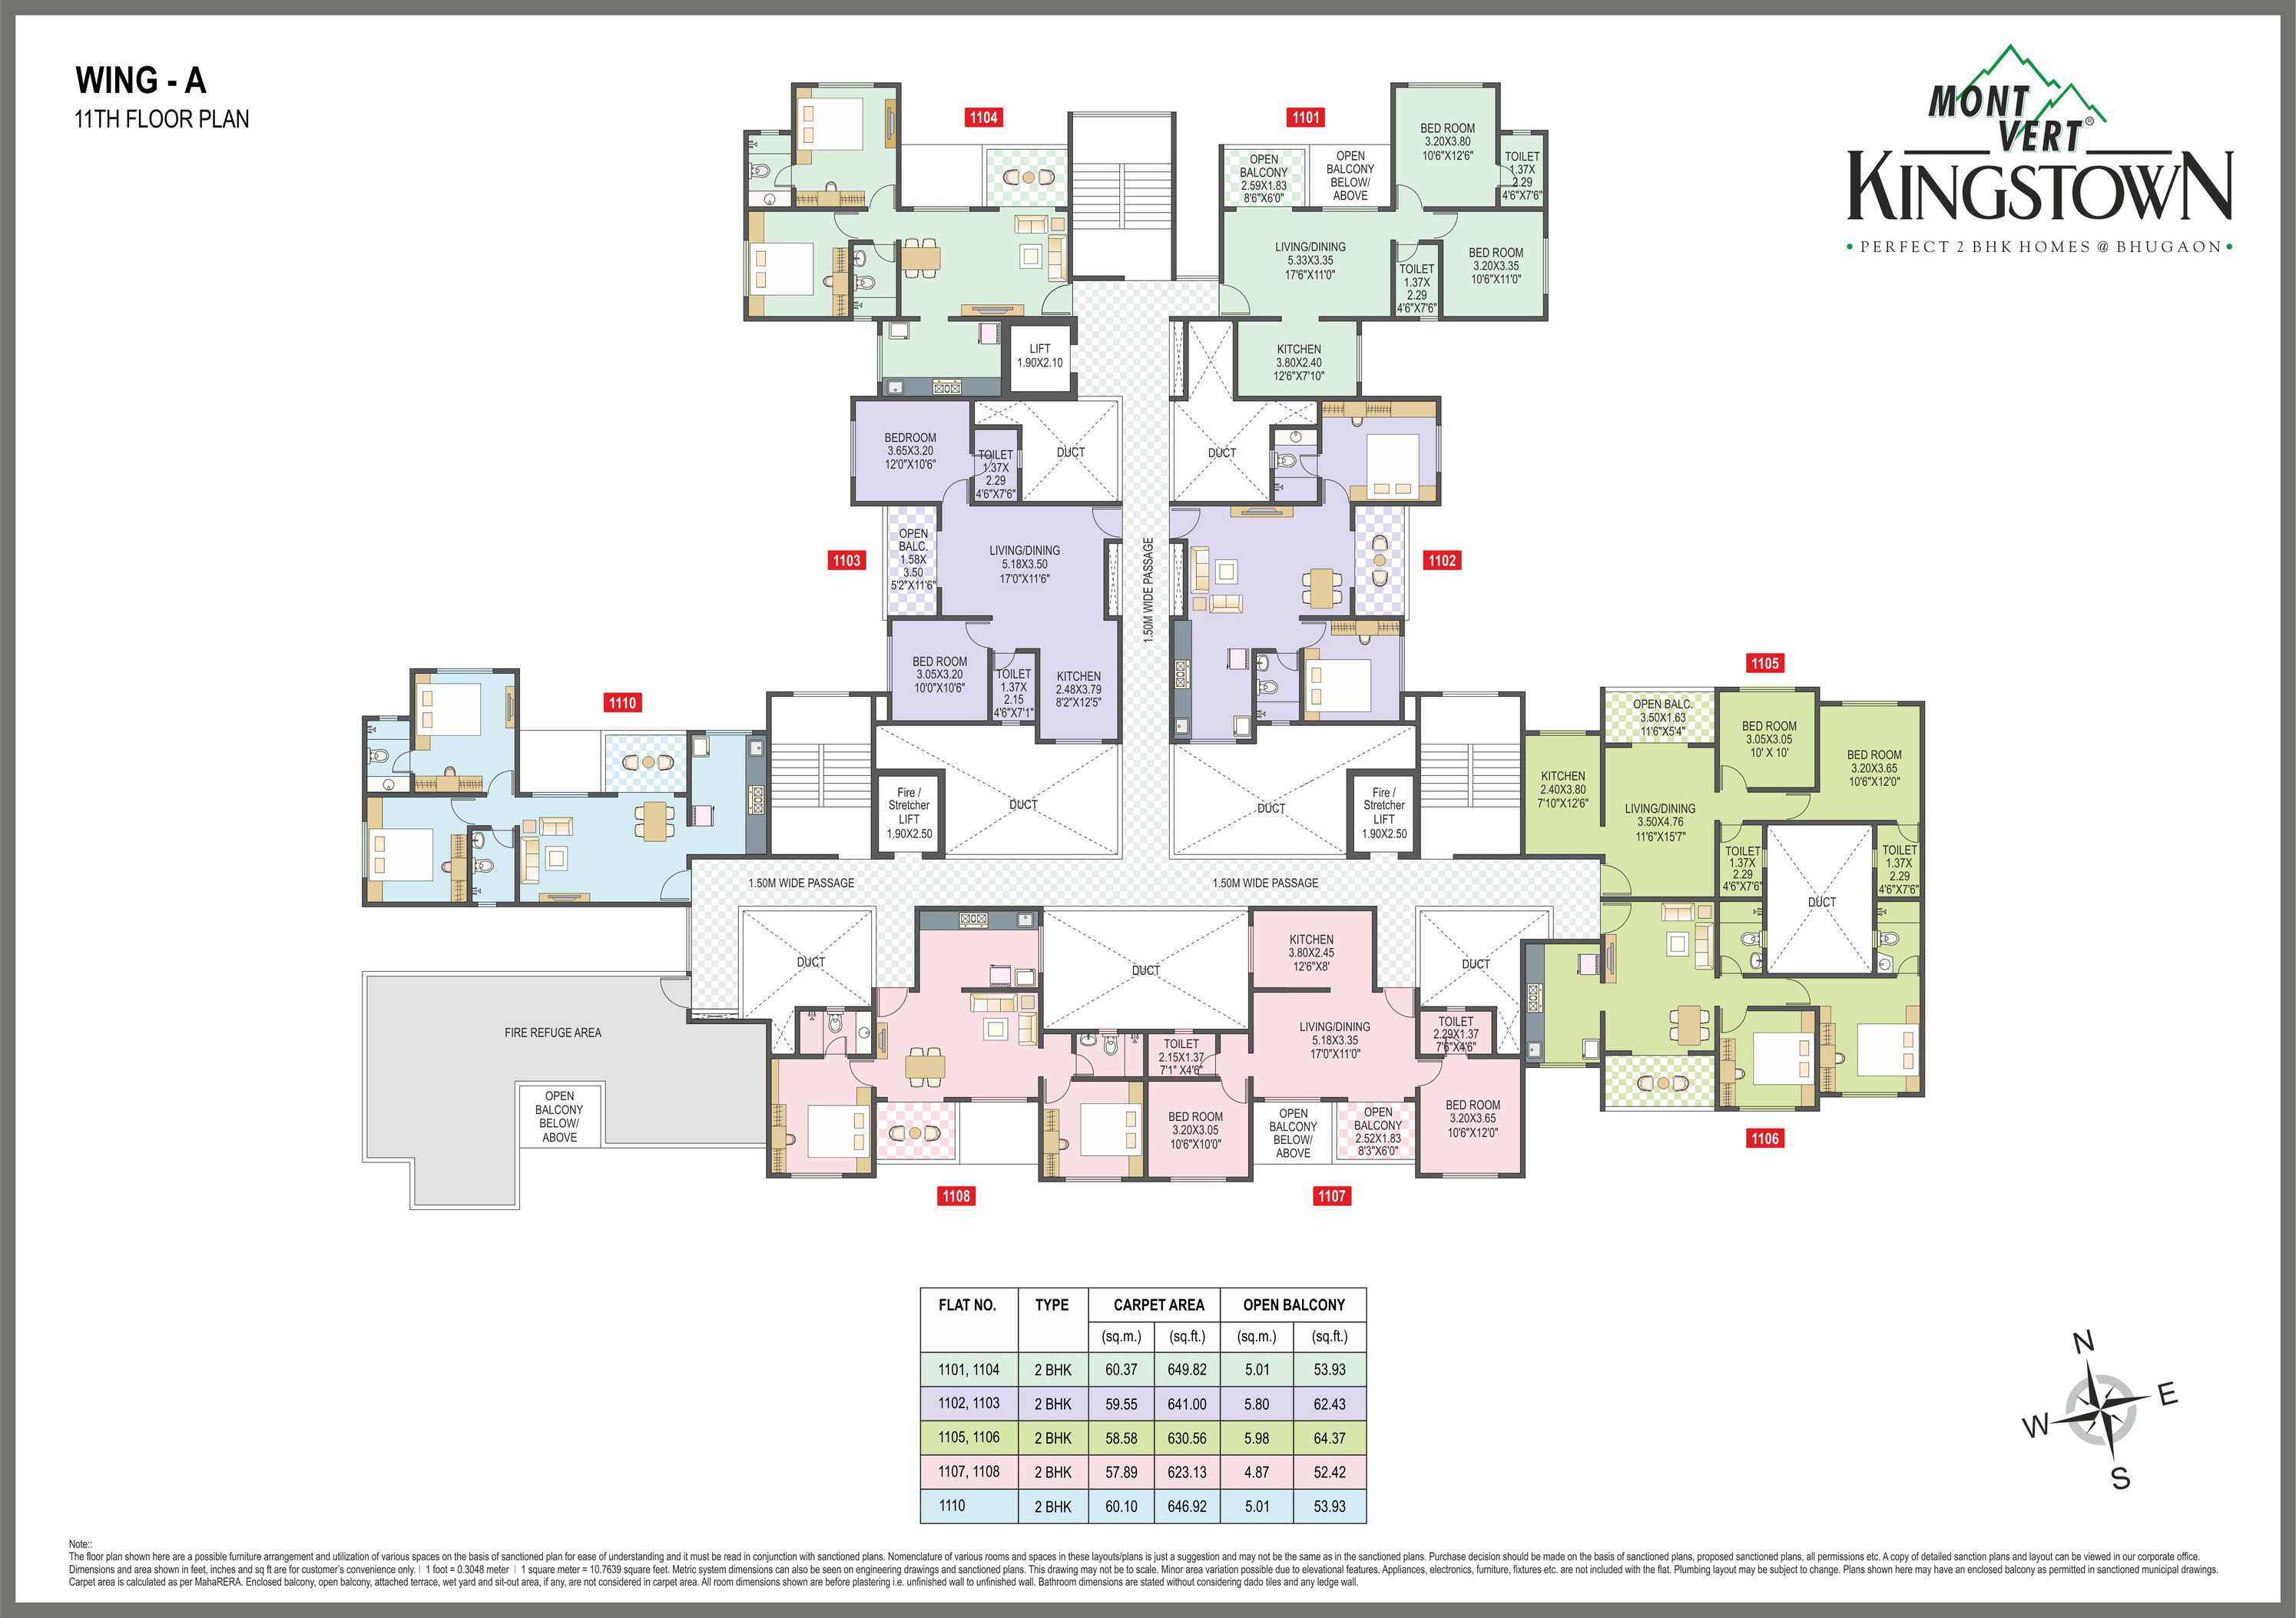 2-bhk-flats-for-sale-in-bavdhan-pune-mont-vert-kingstown- fire-11th